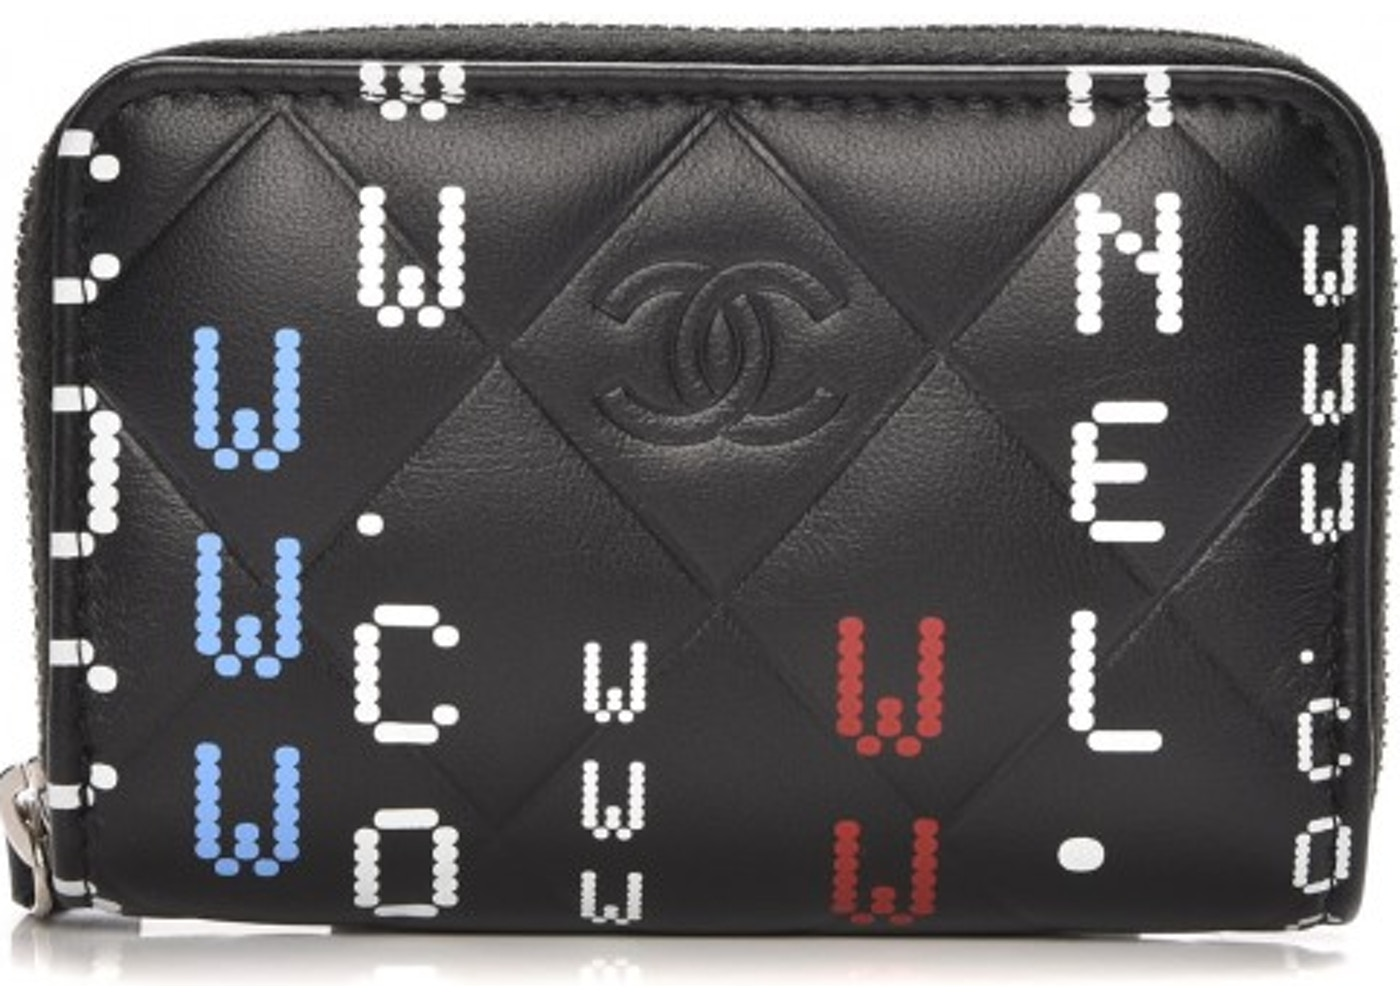 4eb8af0068a220 Chanel Zip Around Coin Purse Wallet Quilted Diamond Data Center Lettering  Black. Quilted Diamond Data Center Lettering Black